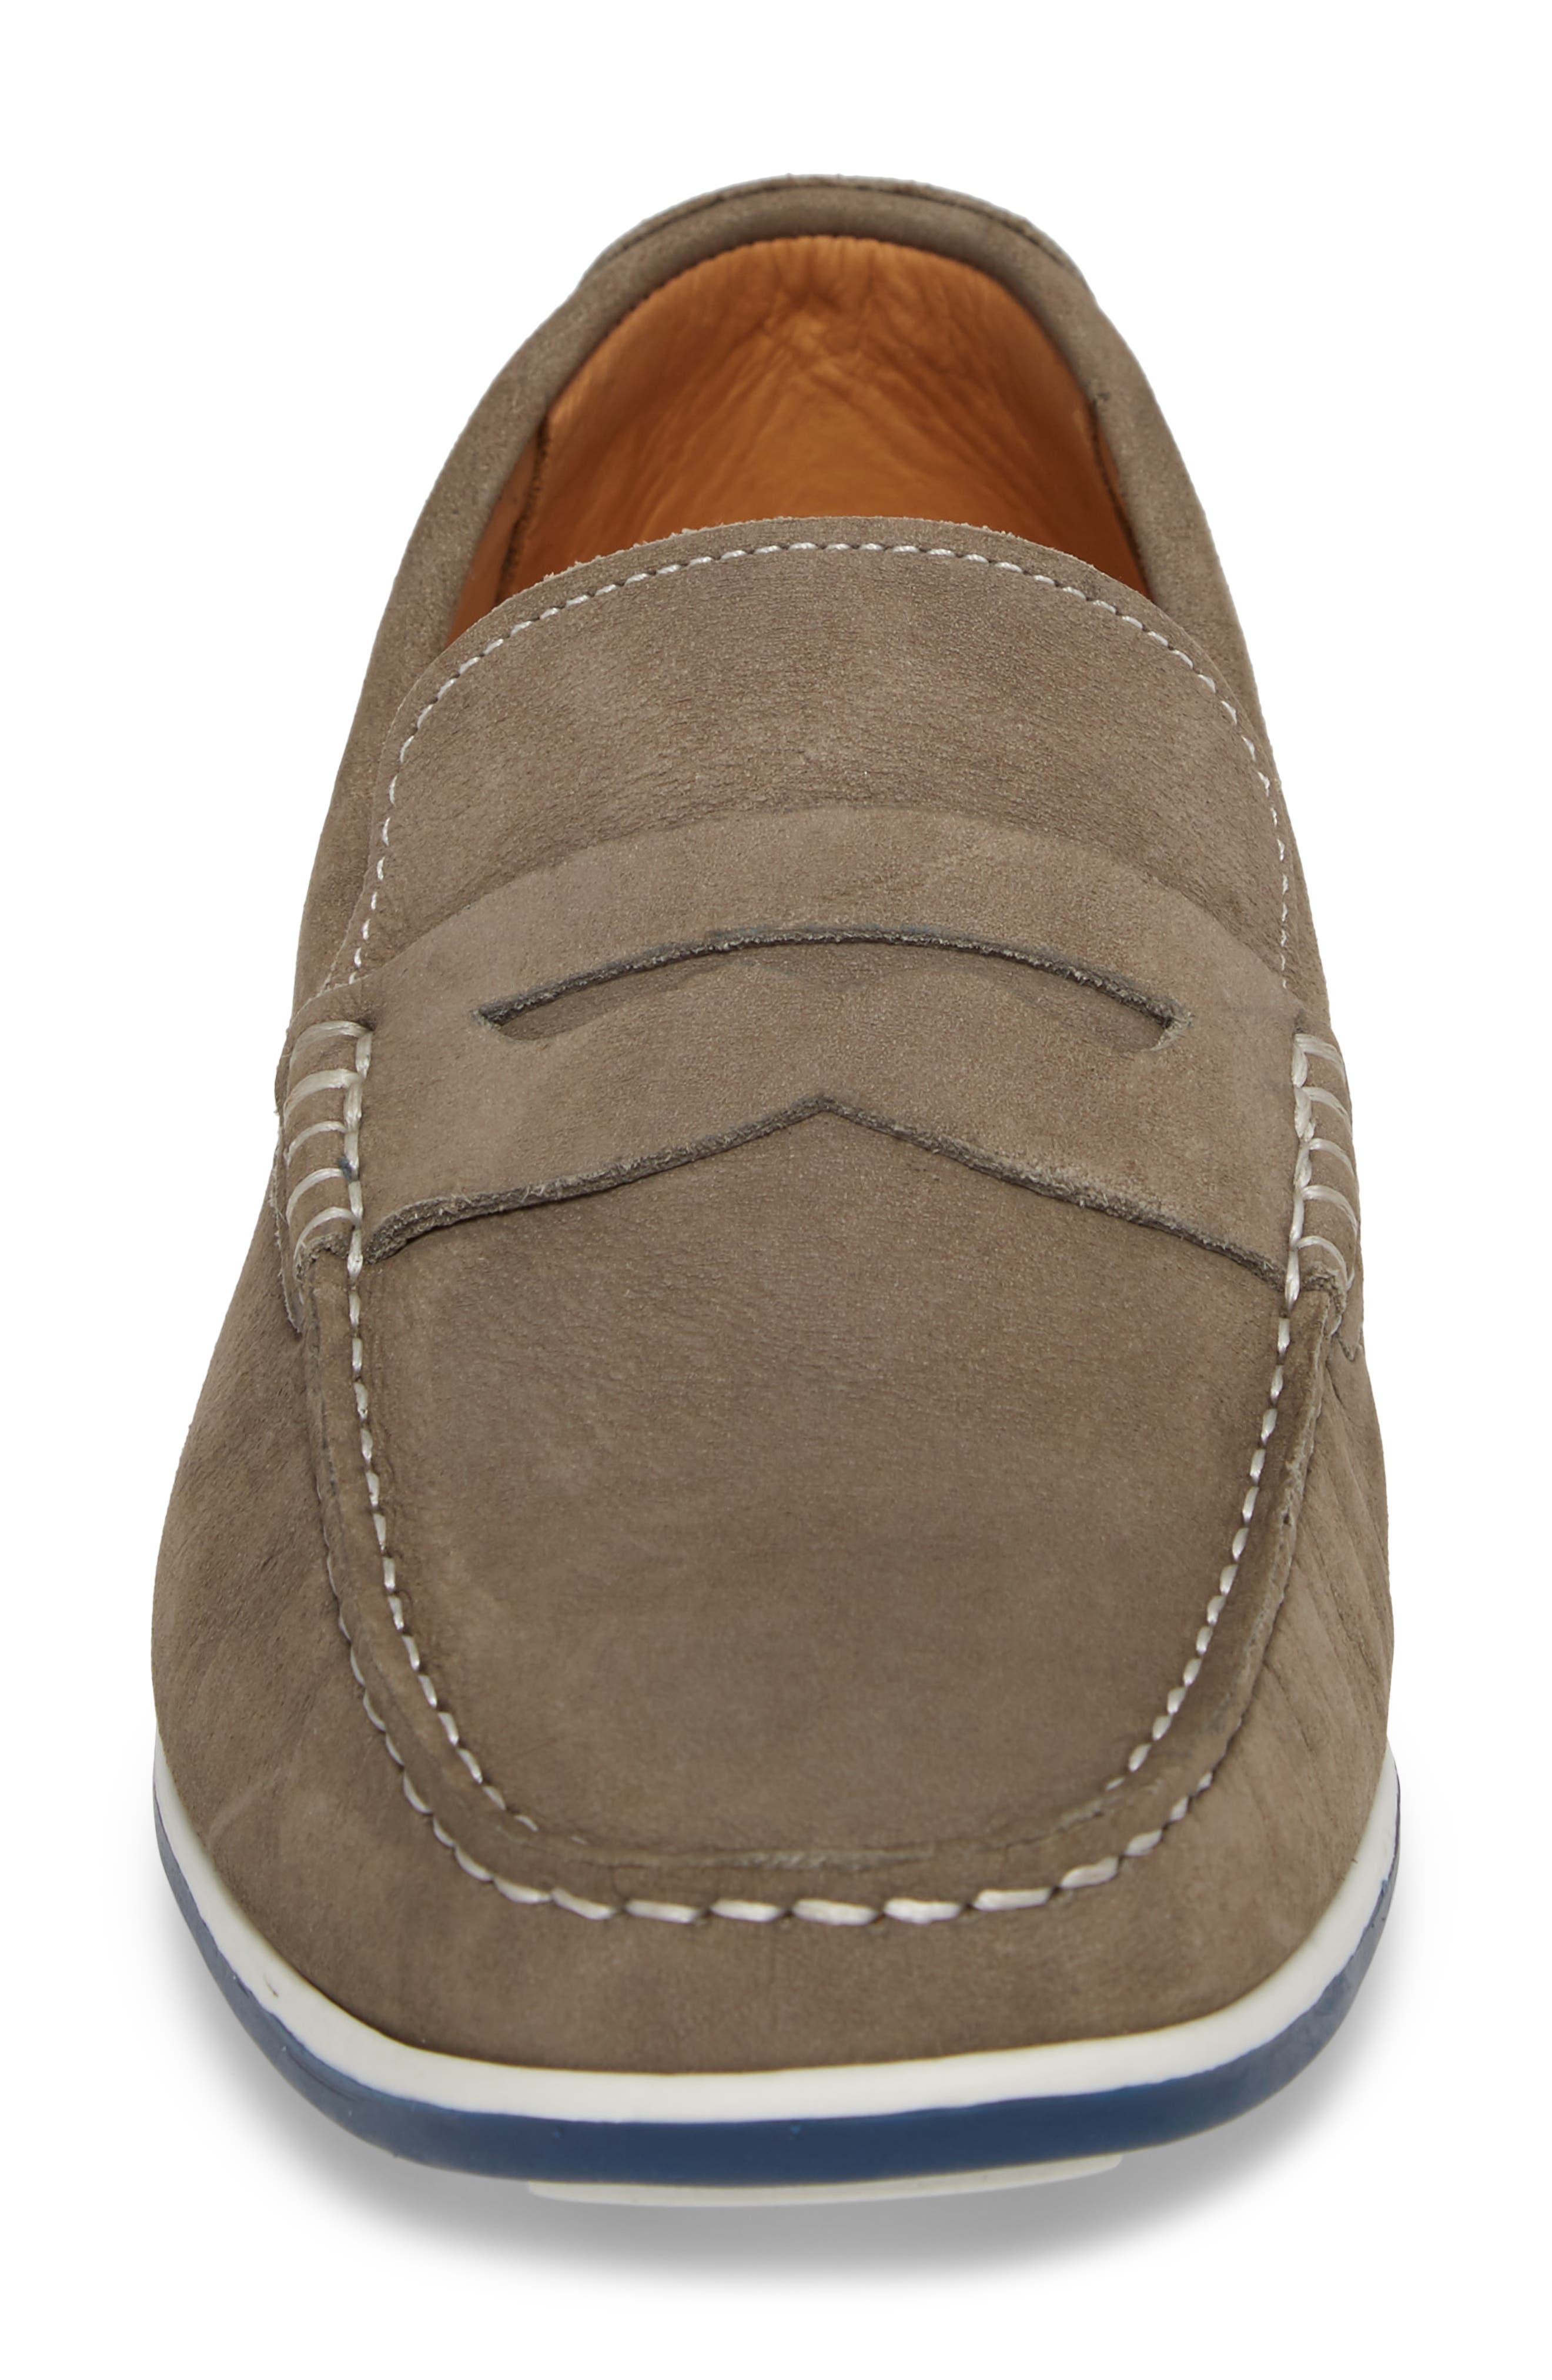 Breakside Driving Loafer,                             Alternate thumbnail 4, color,                             020